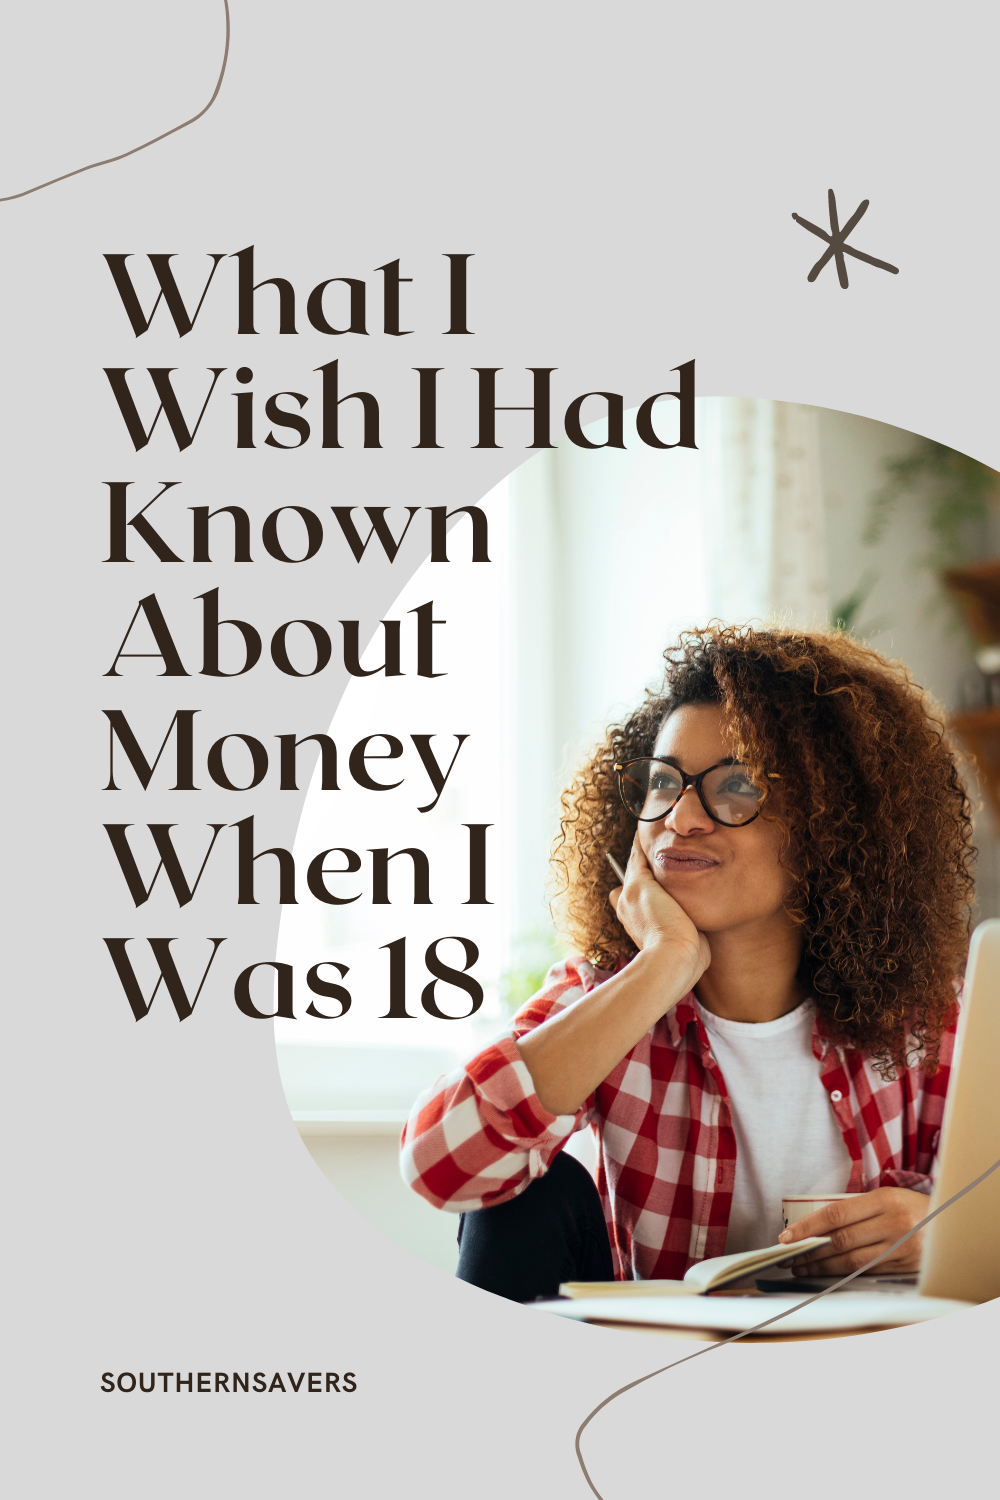 Want to know what isn't fun? Trying to pay off debt and clean up lots of big financial mistakes. With large interest payments it can be so hard to get back out of debt. It's much easier to make good decisions from the start and this post is for anyone who is just starting out or who is ready to start over.